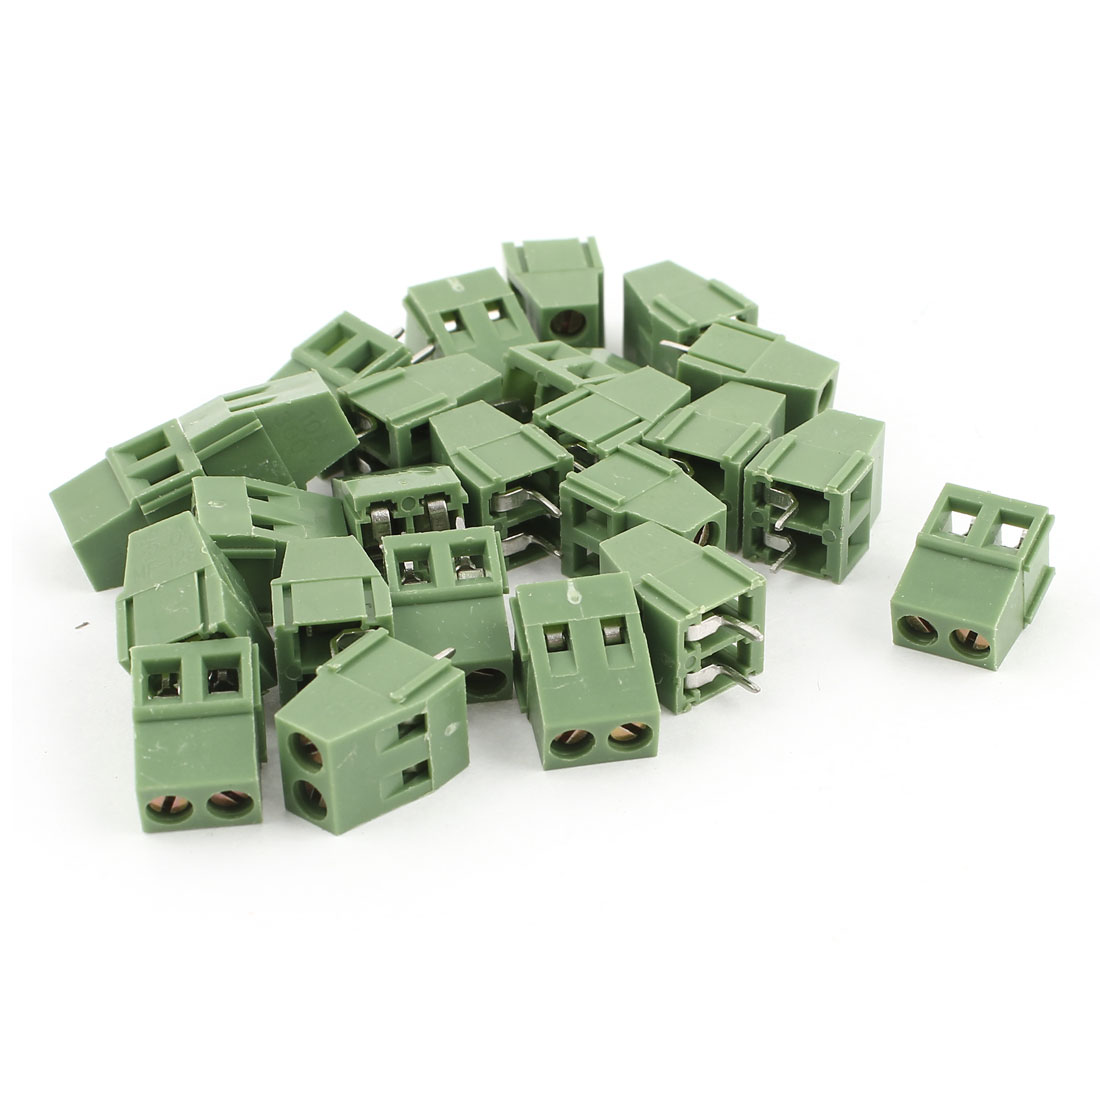 20 Pcs 2Pin 5mm 2Position Screw PCB Terminal Block Connector Green 300V 10A